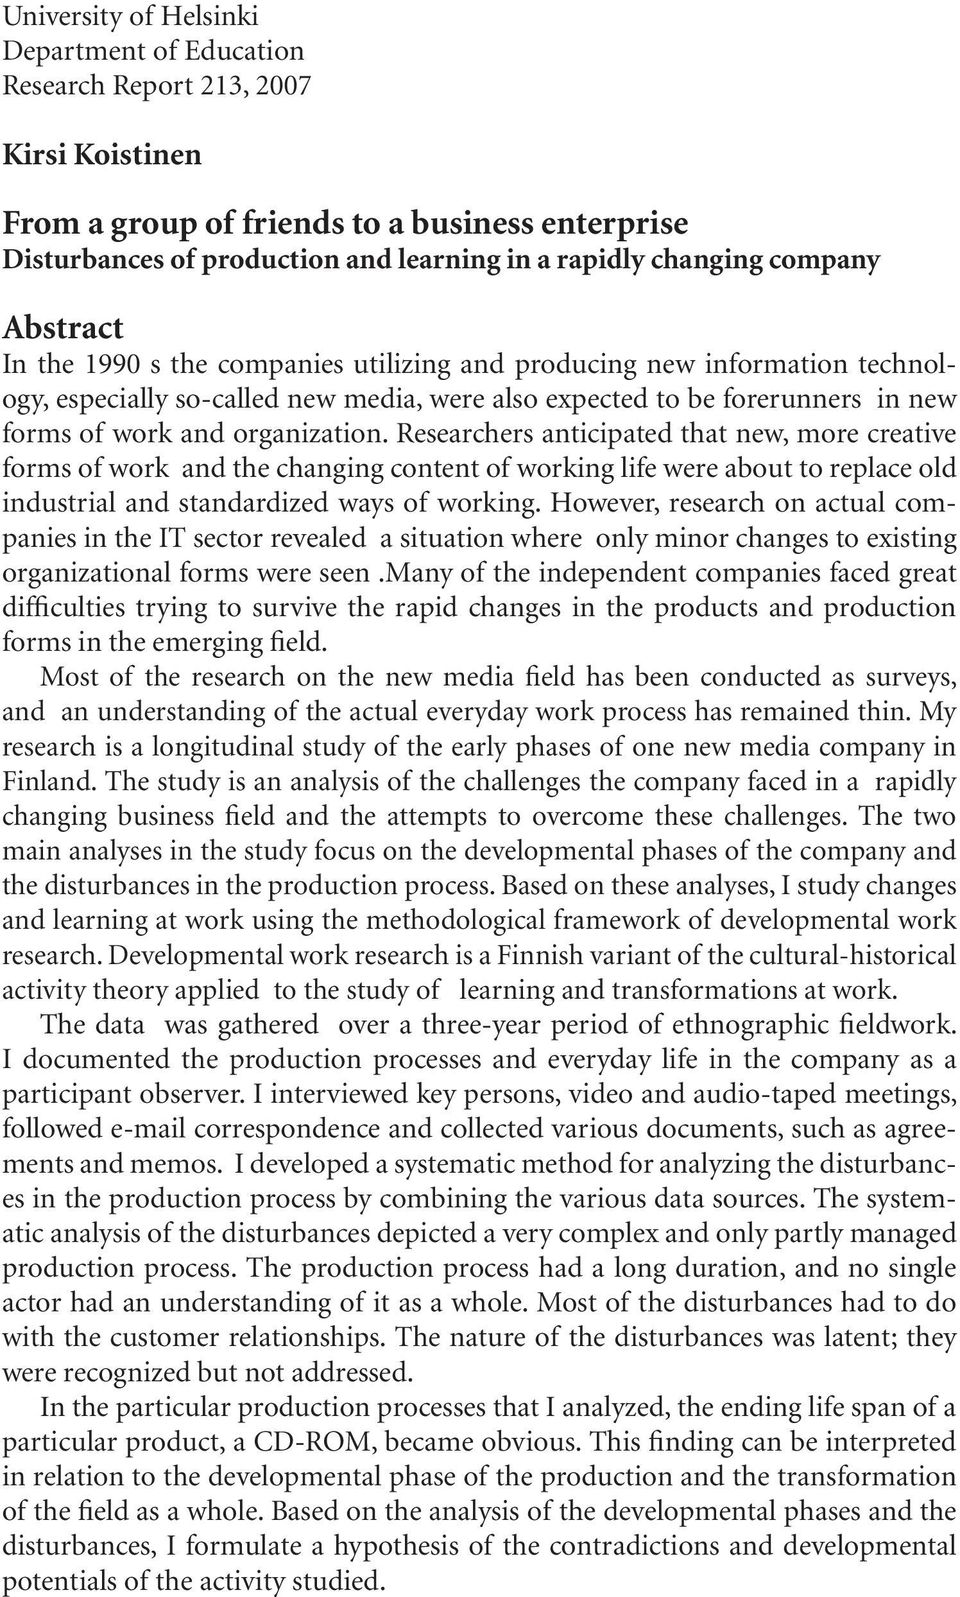 organization. Researchers anticipated that new, more creative forms of work and the changing content of working life were about to replace old industrial and standardized ways of working.